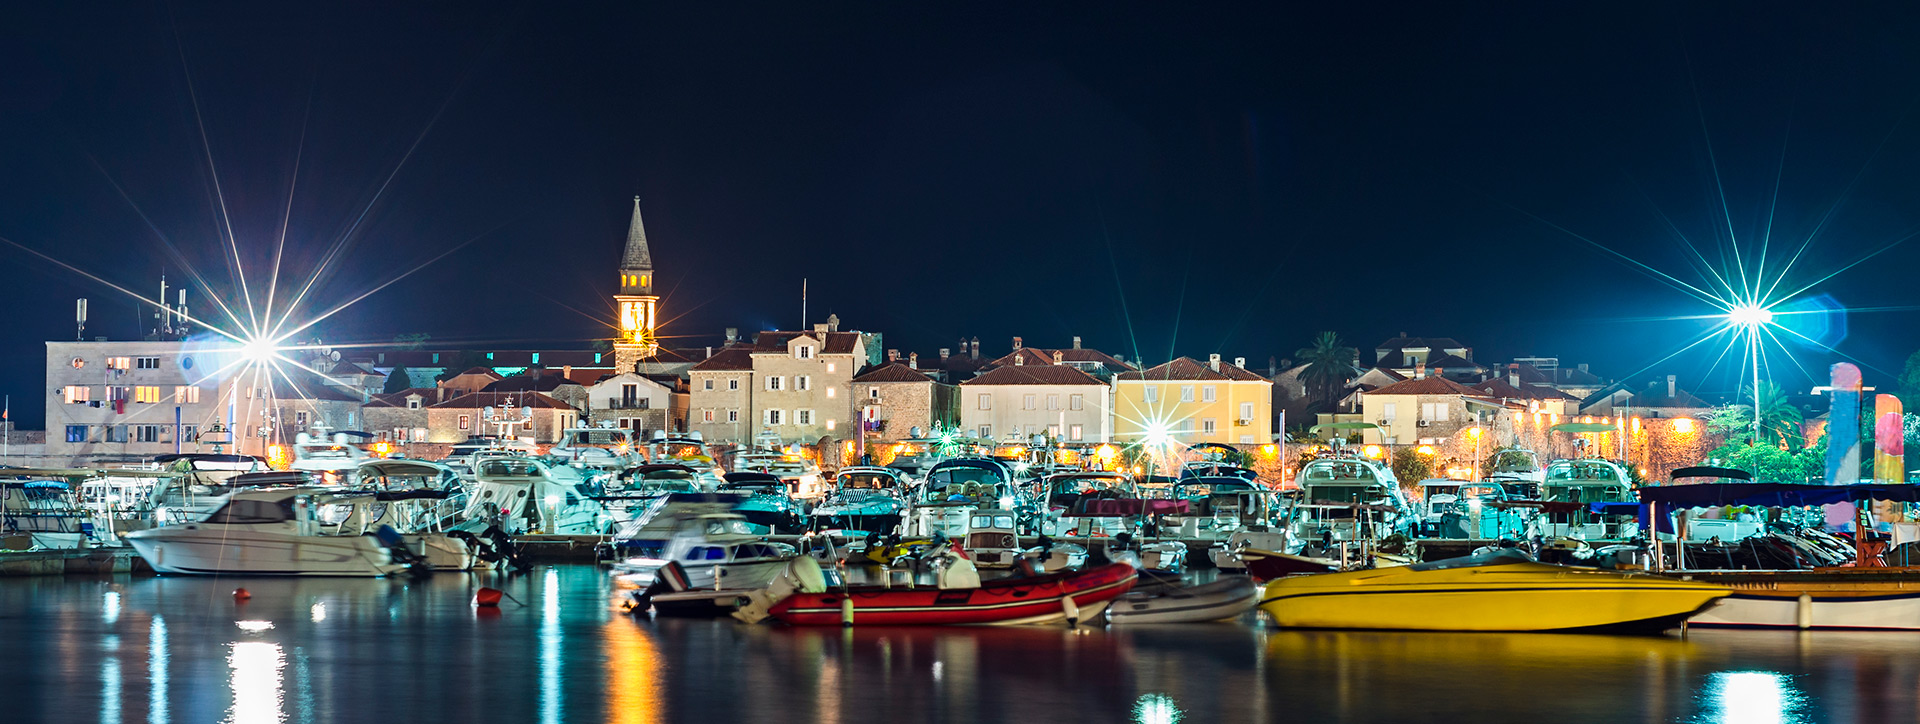 City Marina and promenade at night, Budva, Montenegro